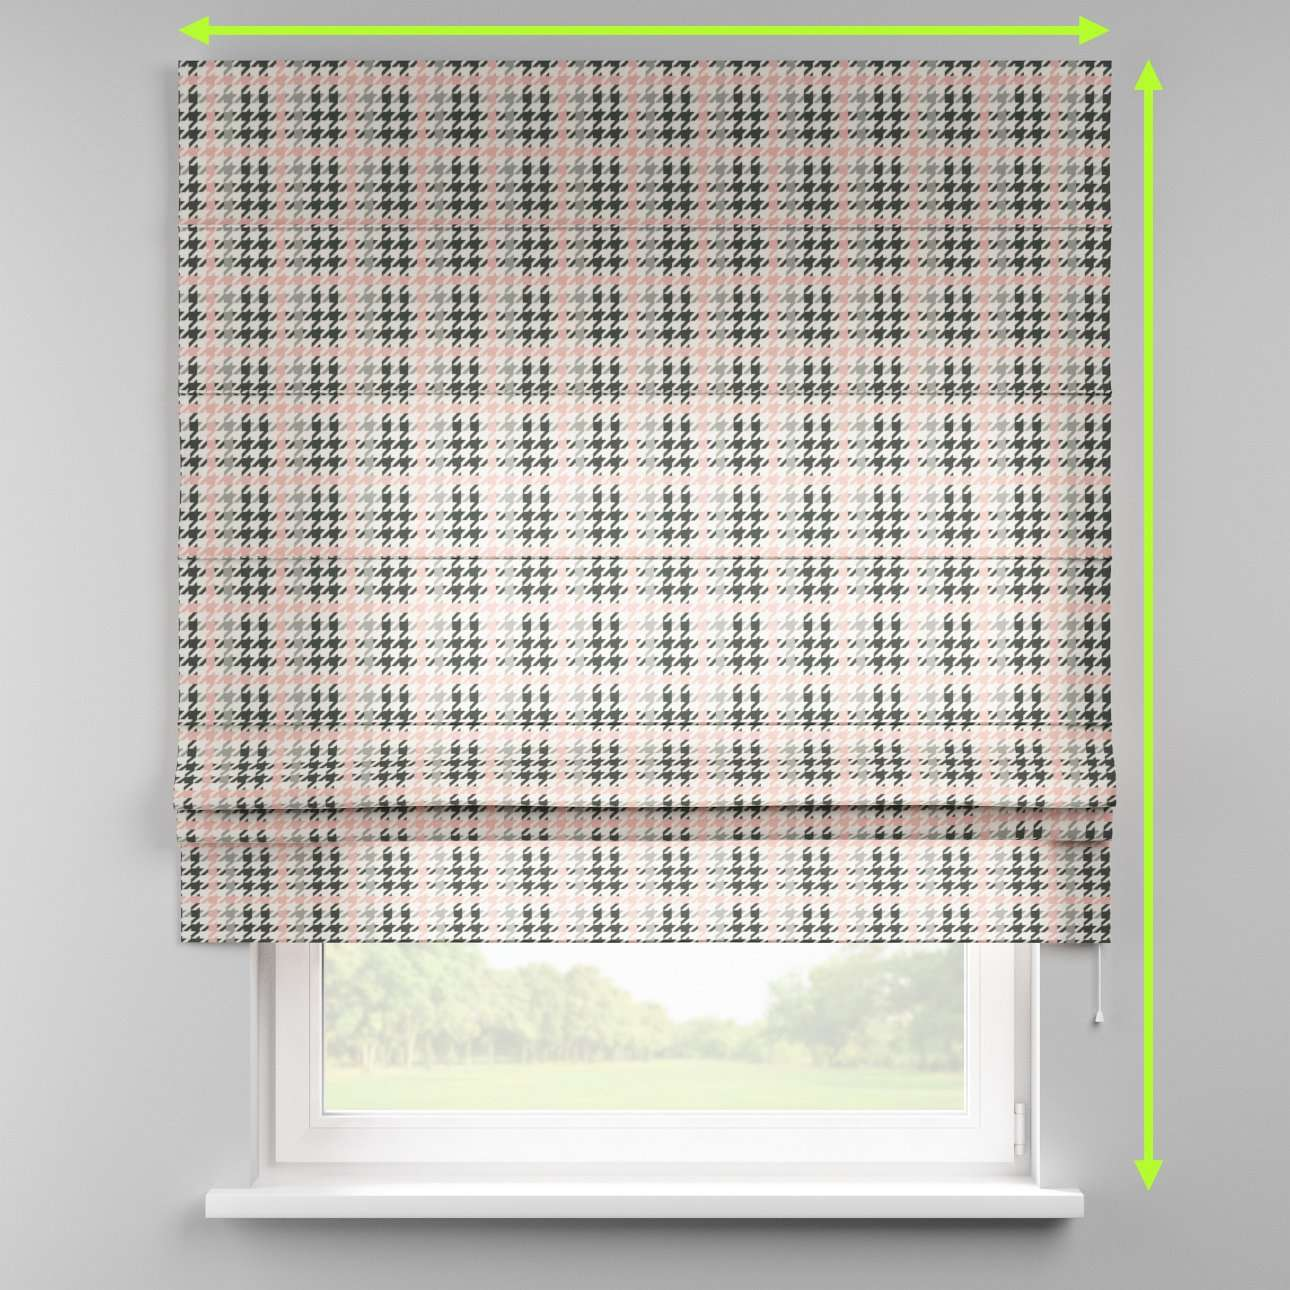 Padva roman blind  in collection Brooklyn, fabric: 137-75